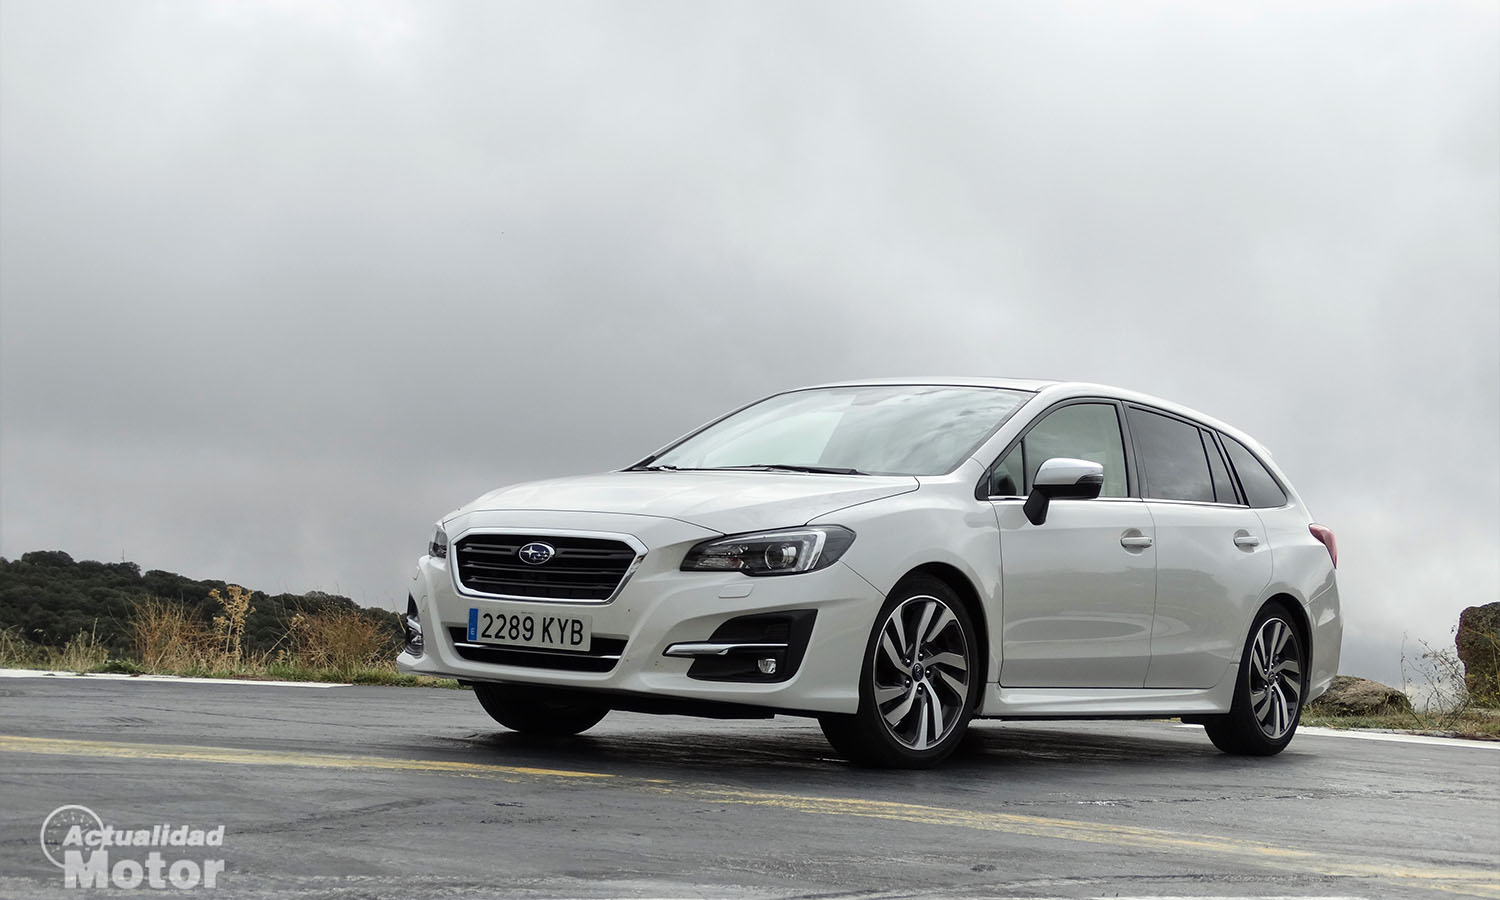 Prueba Subaru Levorg Executive Plus 150 CV Eco Bi-Fuel GLP